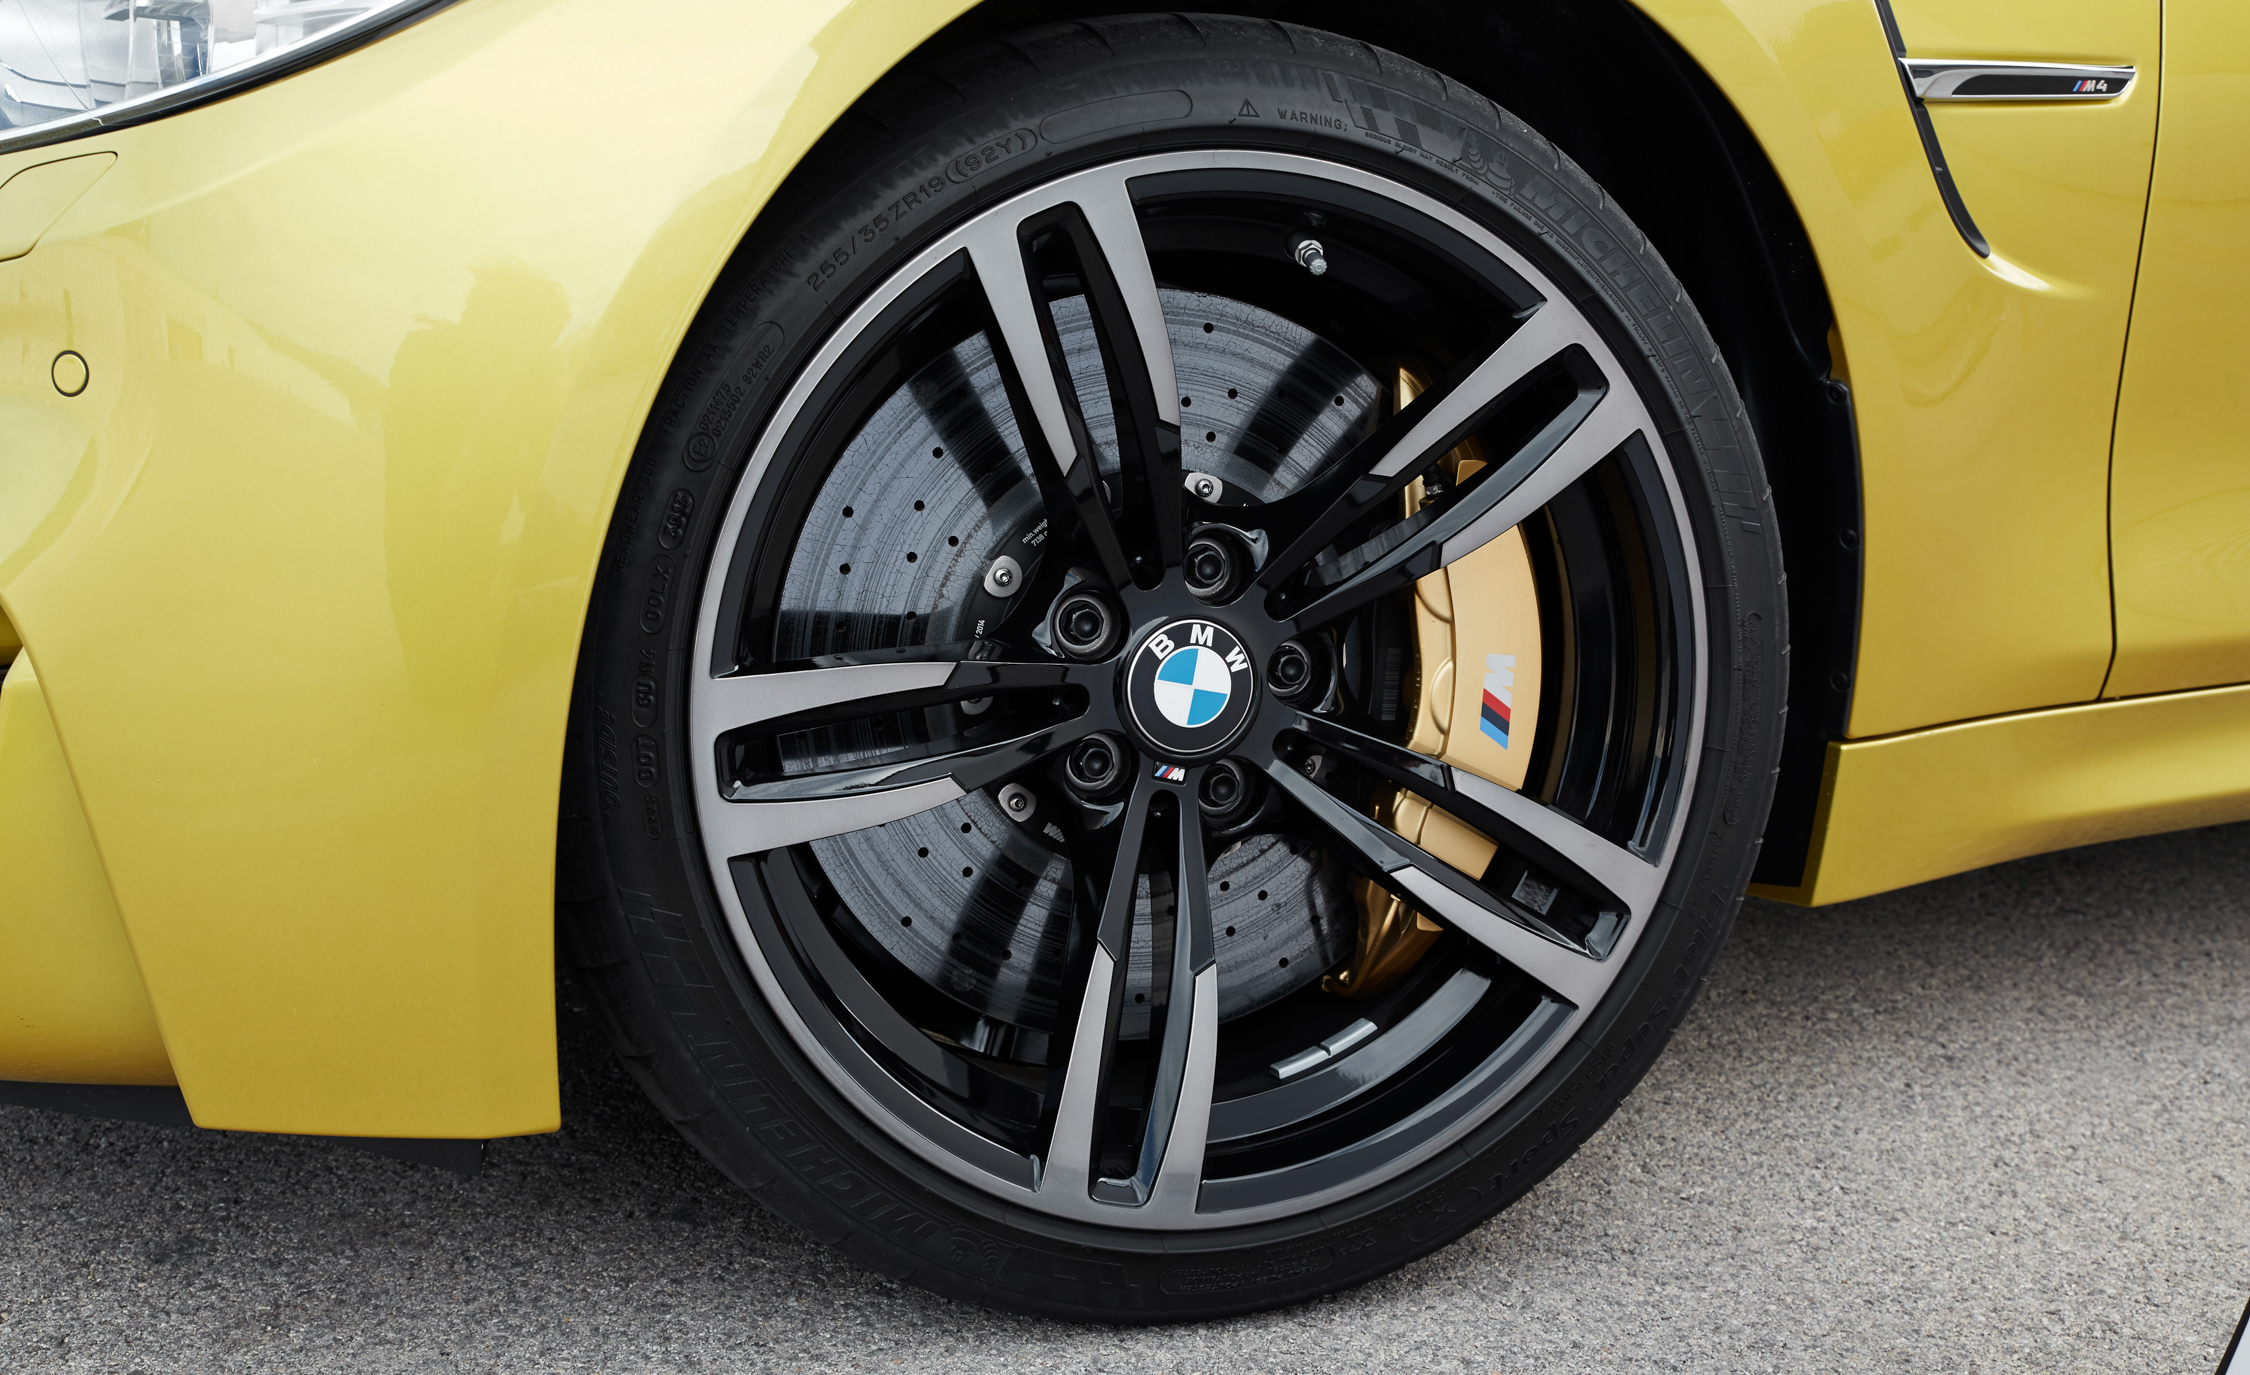 2015 BMW M4 Coupe Wheel Wheel (View 36 of 41)